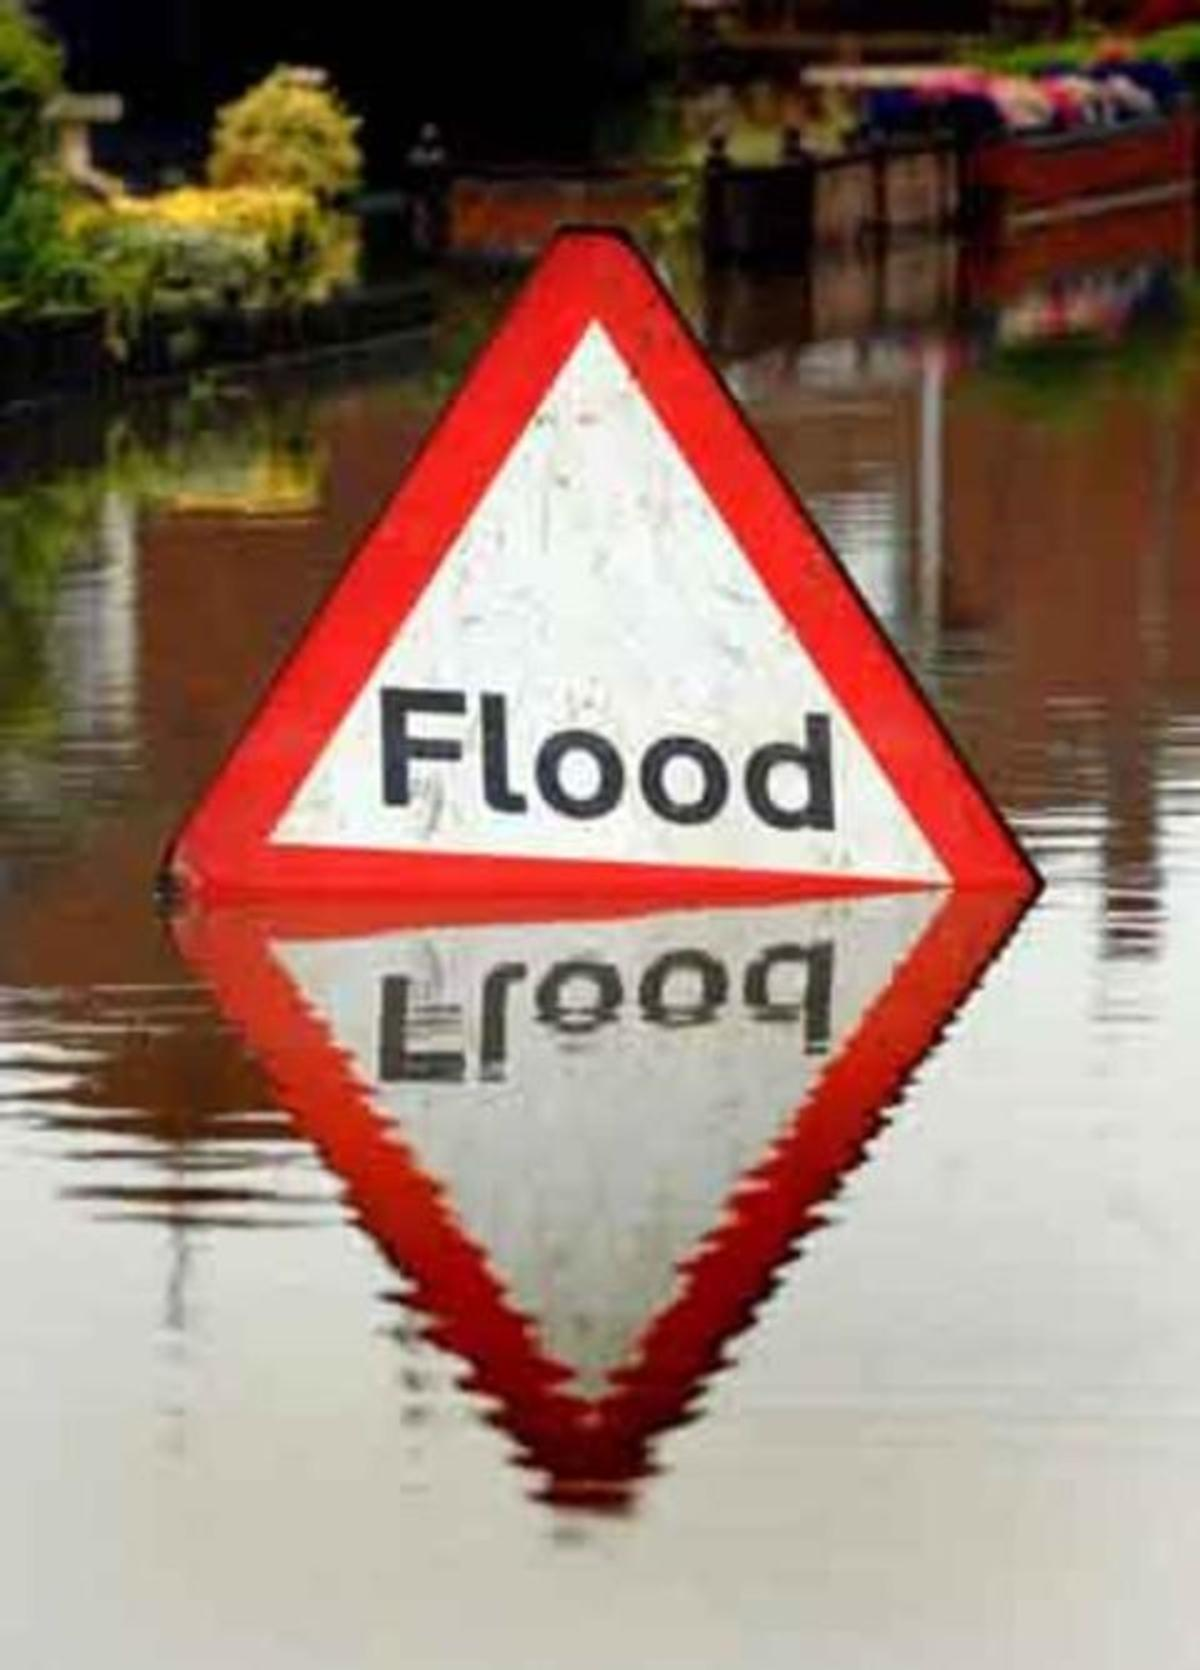 Flood warnings issued throughout Worcestershire